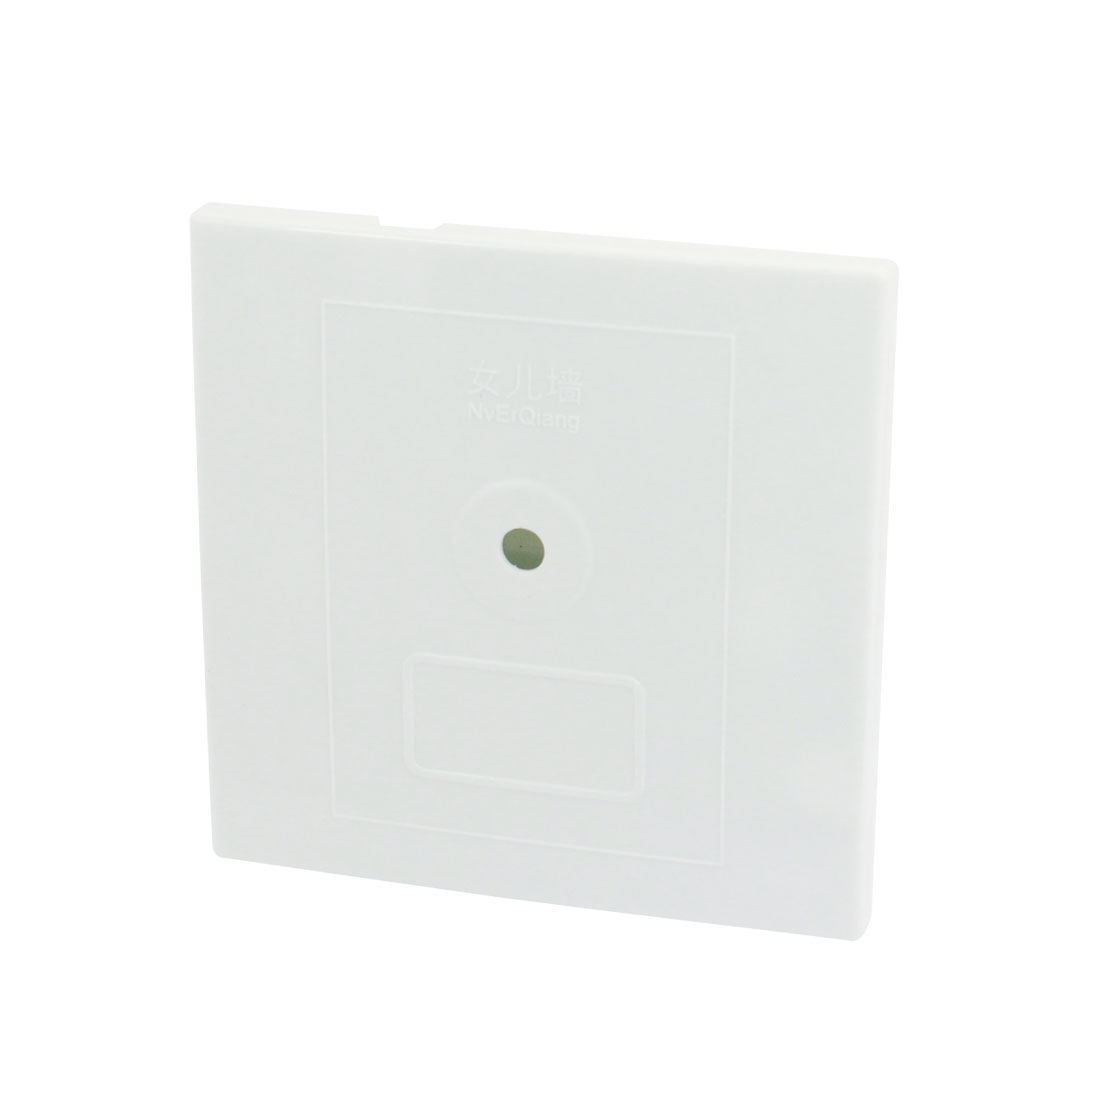 Square Shaped White Plastic CCTV Camera Housing Case 8.6cm x 8.6cm x 4cm